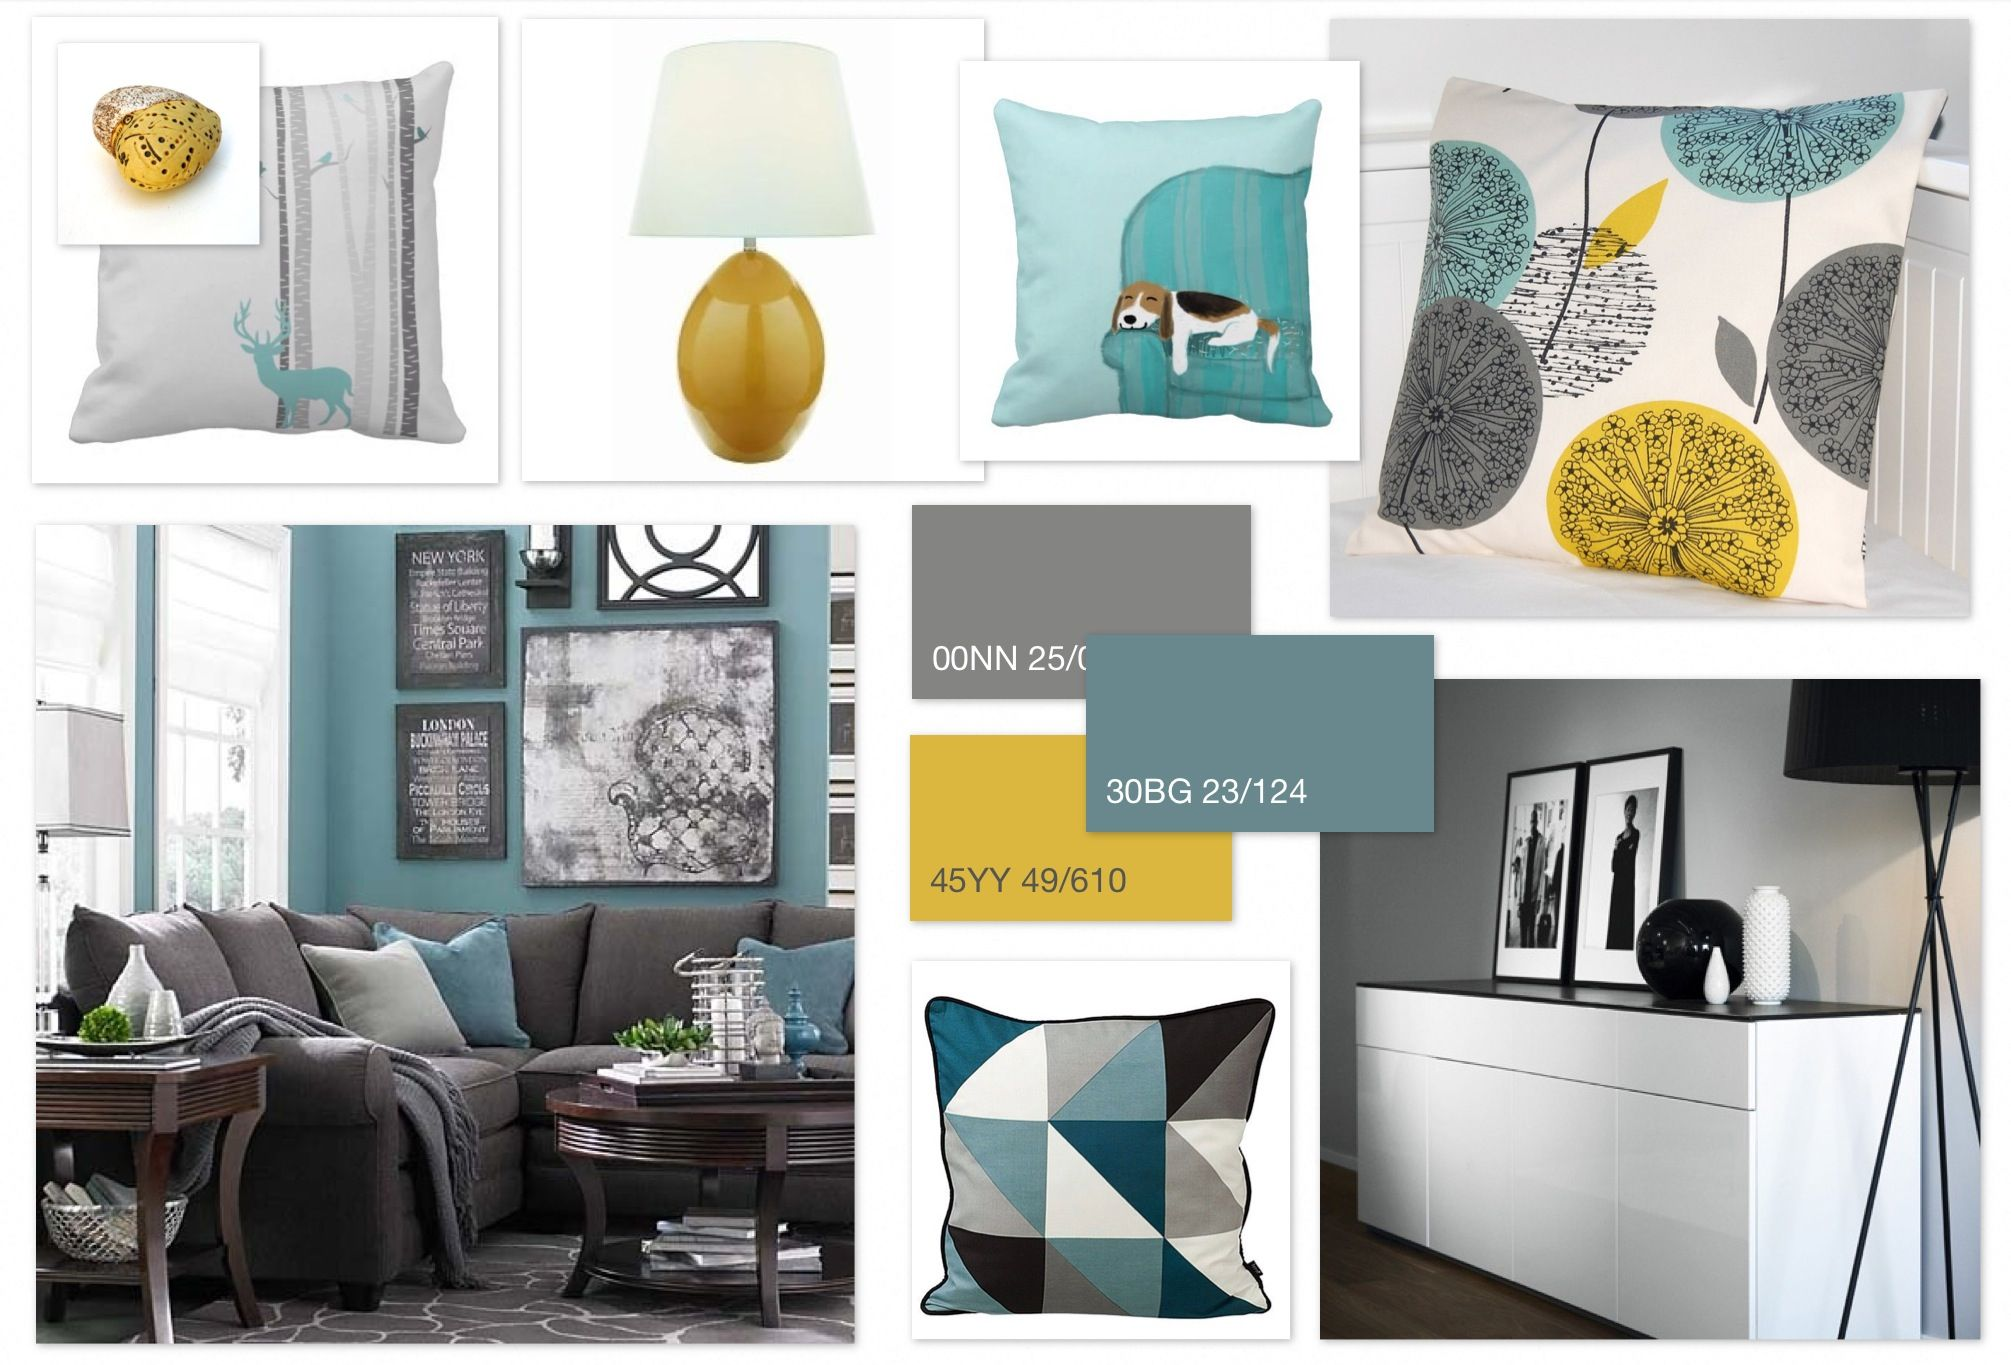 Marvelous Grey Teal Ochre Scheme For A Family Living Room Home Interior Design Ideas Clesiryabchikinfo